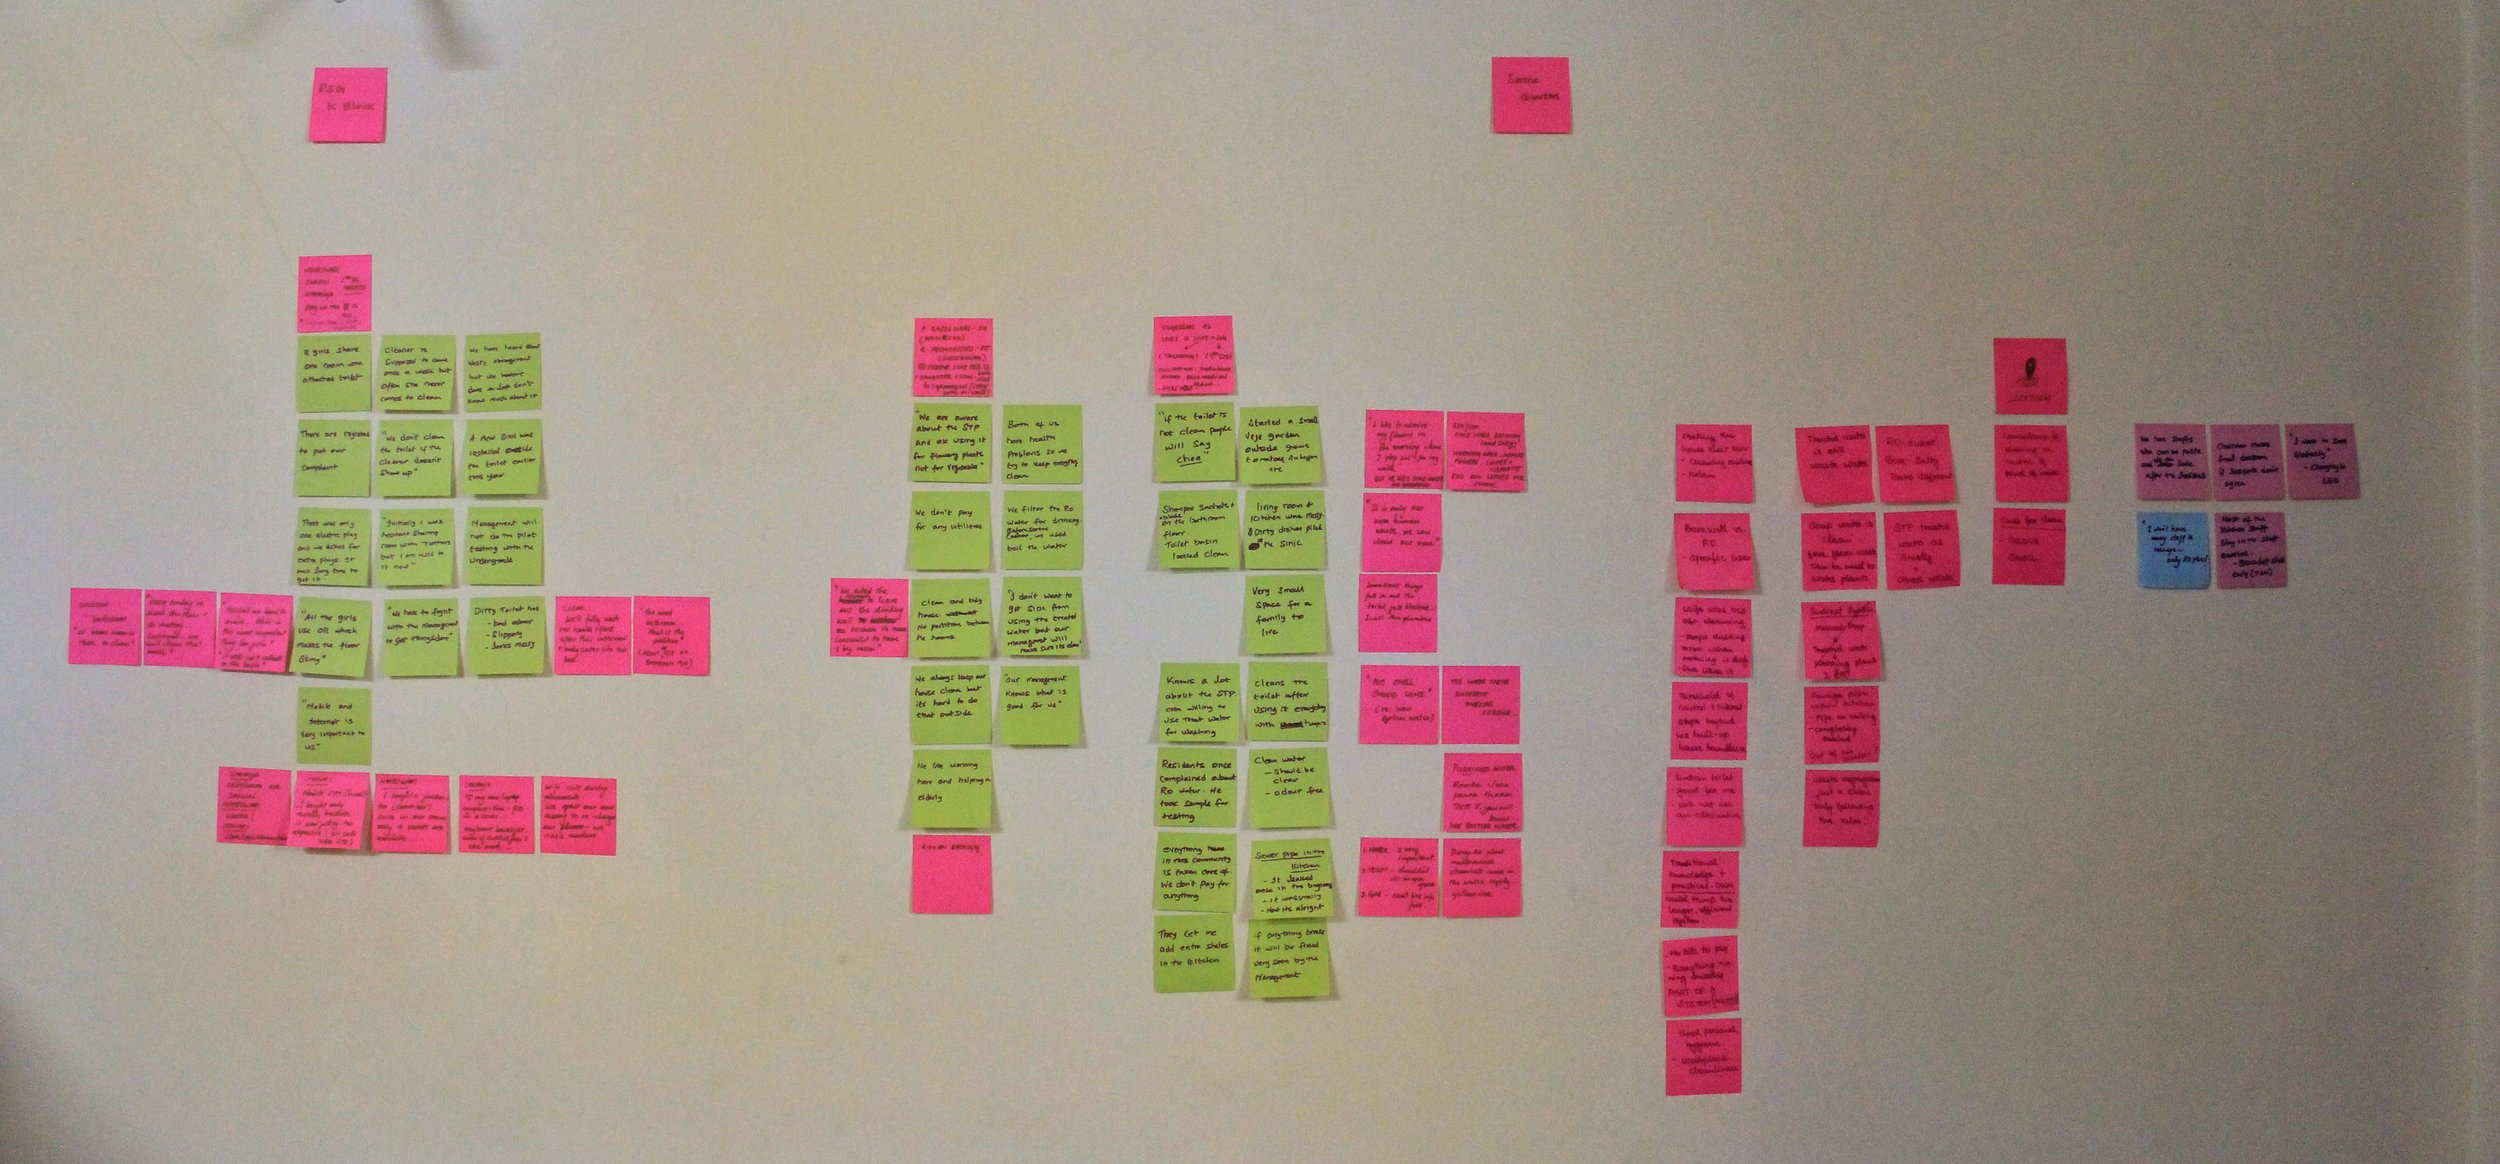 Affinity Mapping  identifying thematic insights around which other findings could be clustered.